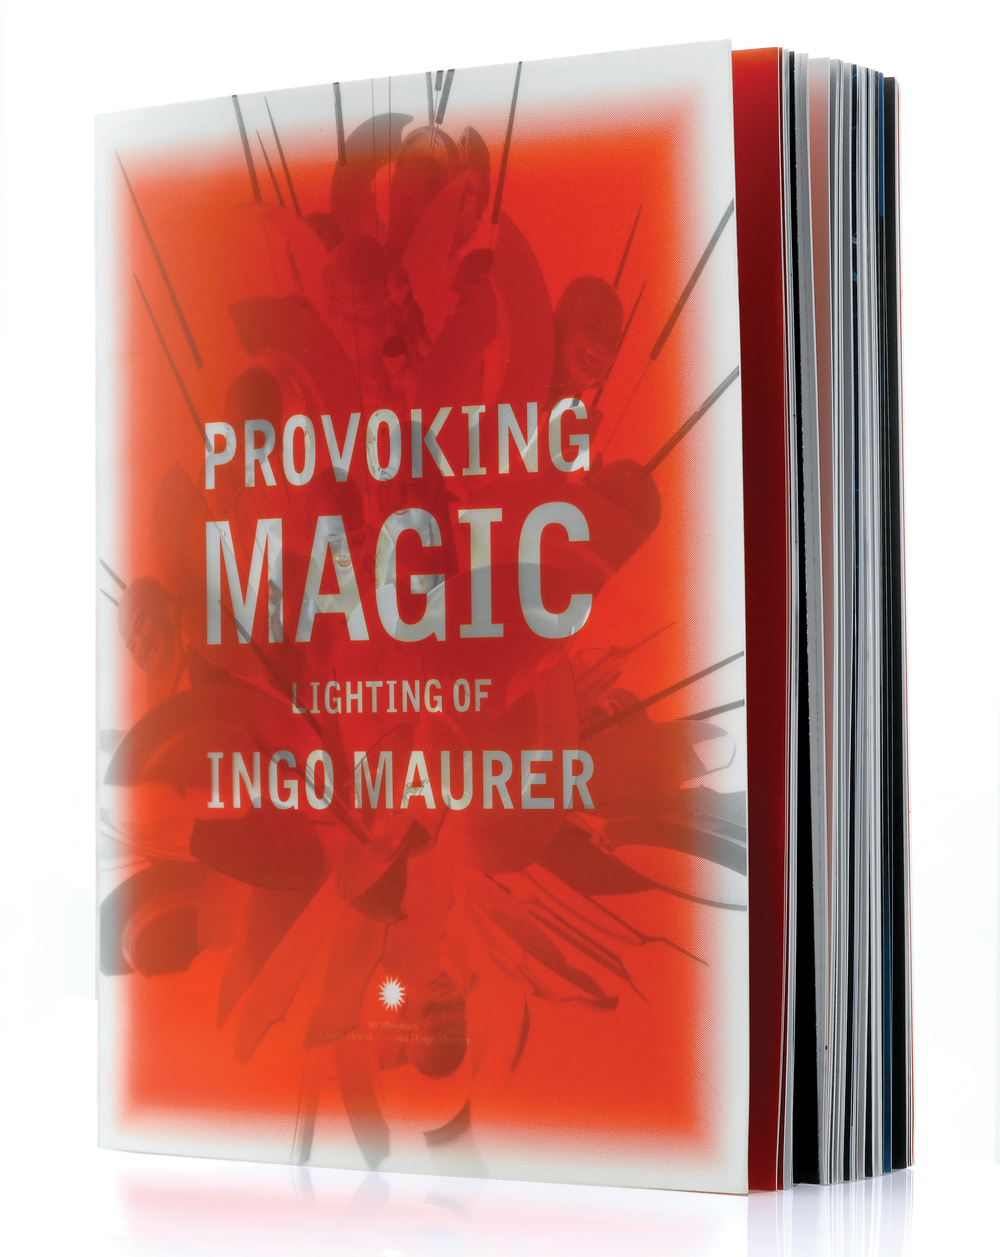 INGO_provoking_magic_cover-2_BEH.jpg